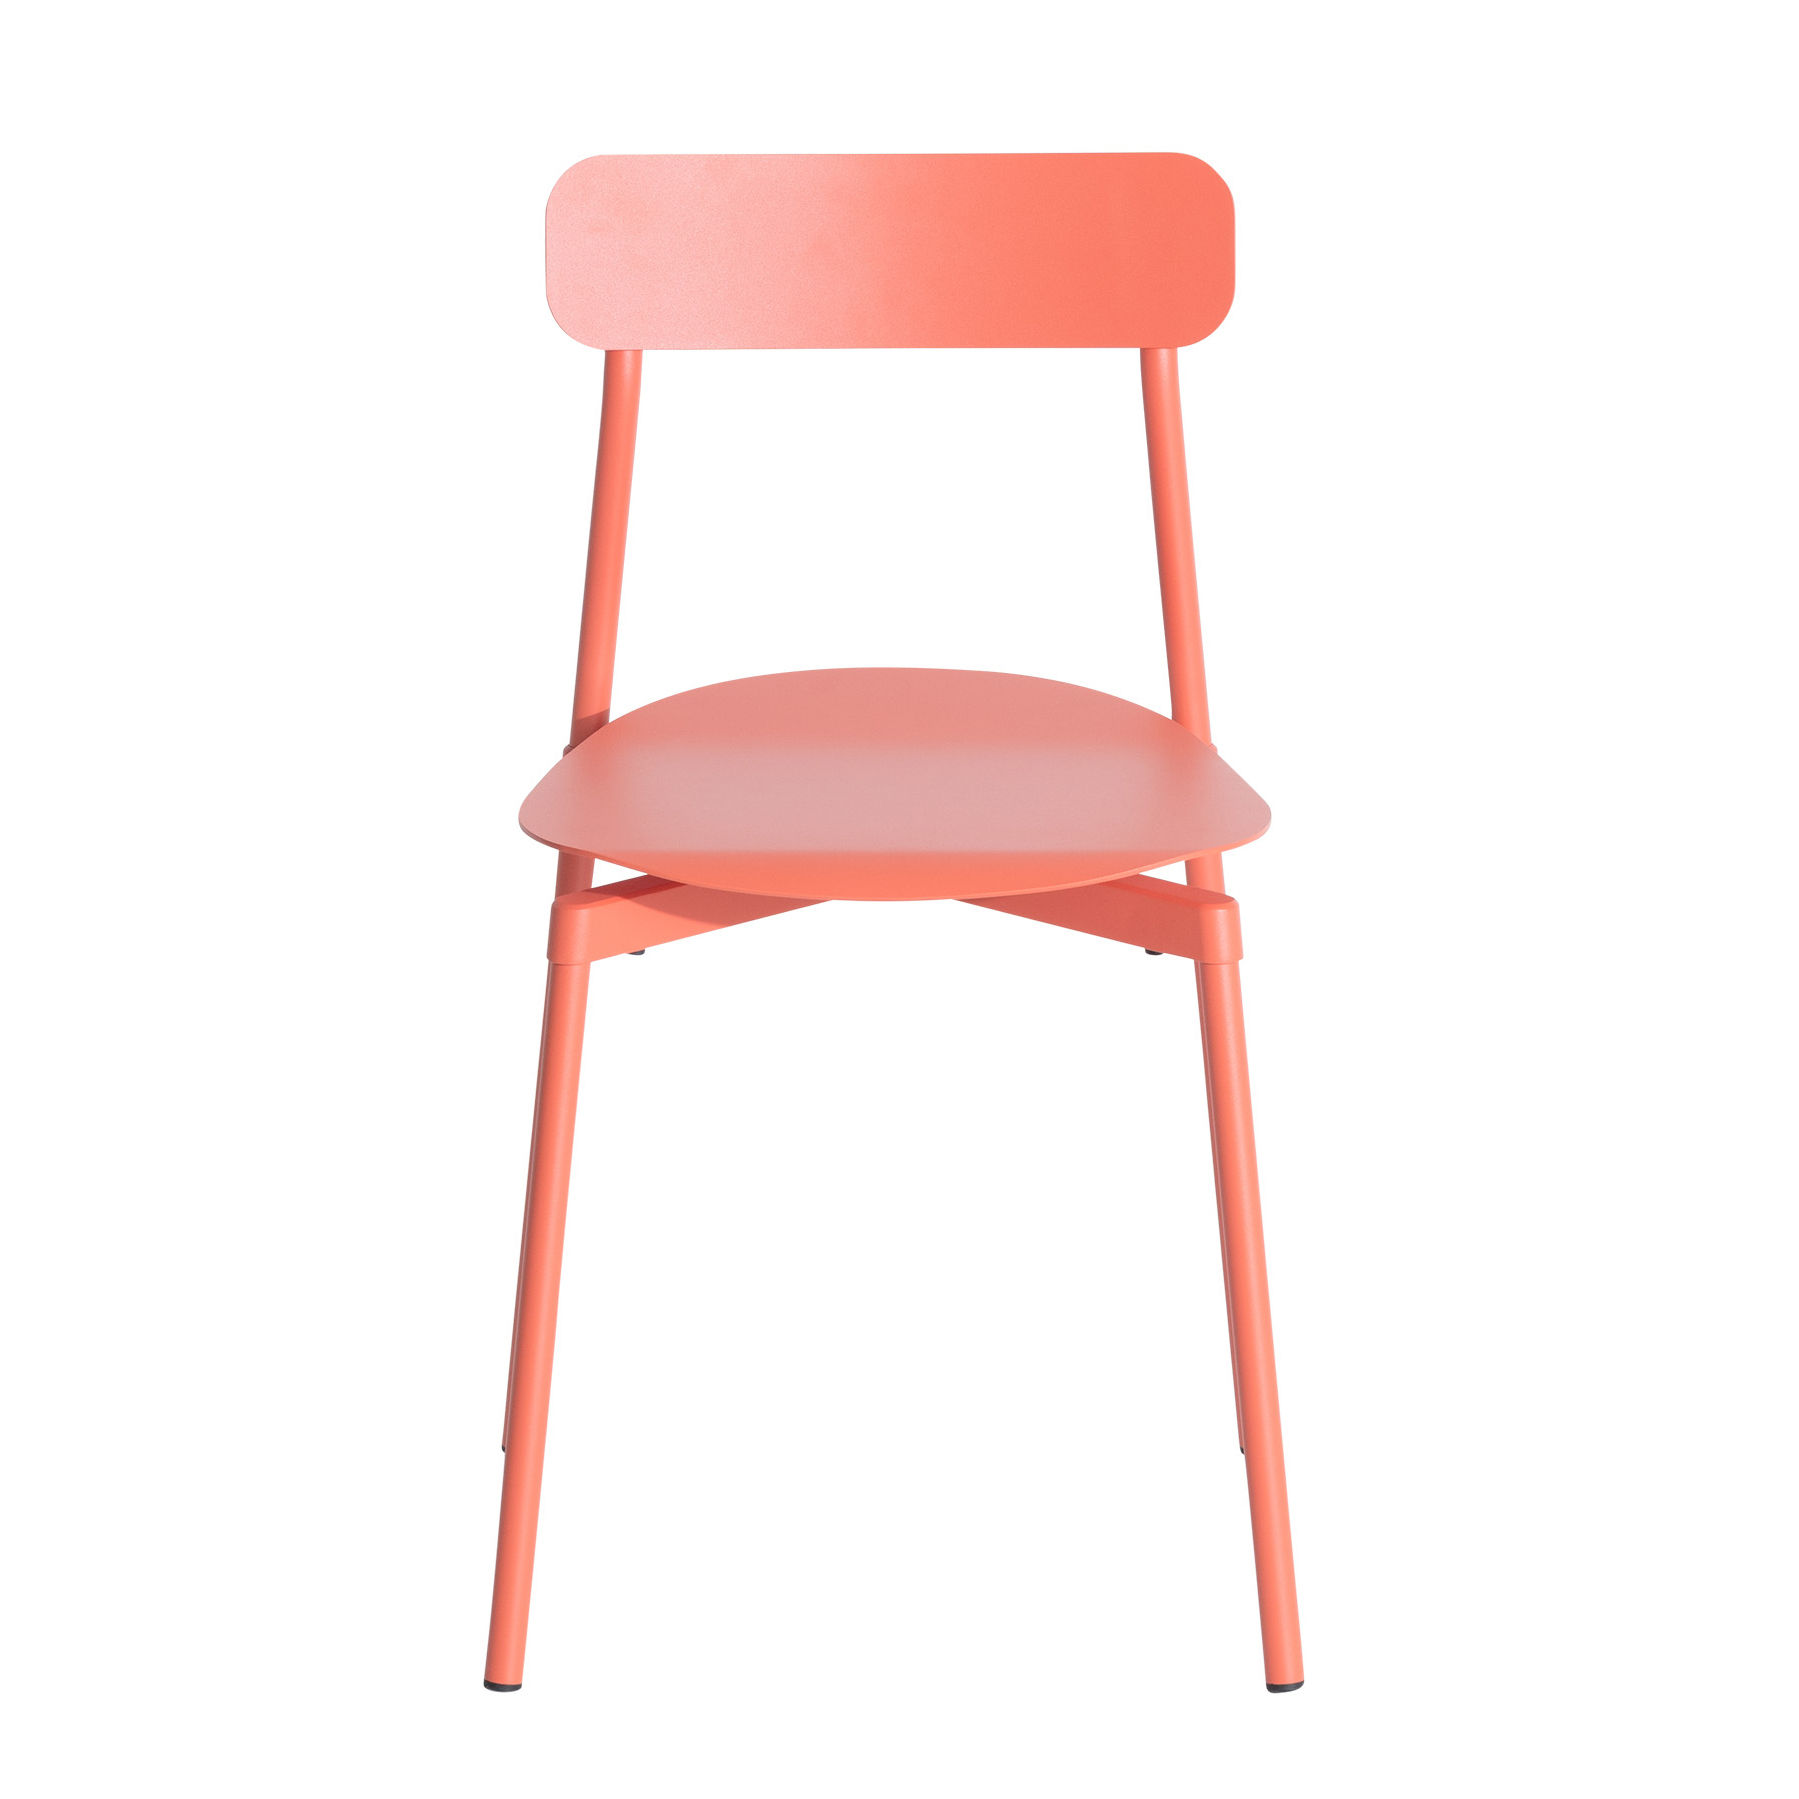 Furniture - Chairs - Fromme Stacking chair - / Aluminium by Petite Friture - Coral - Aluminium